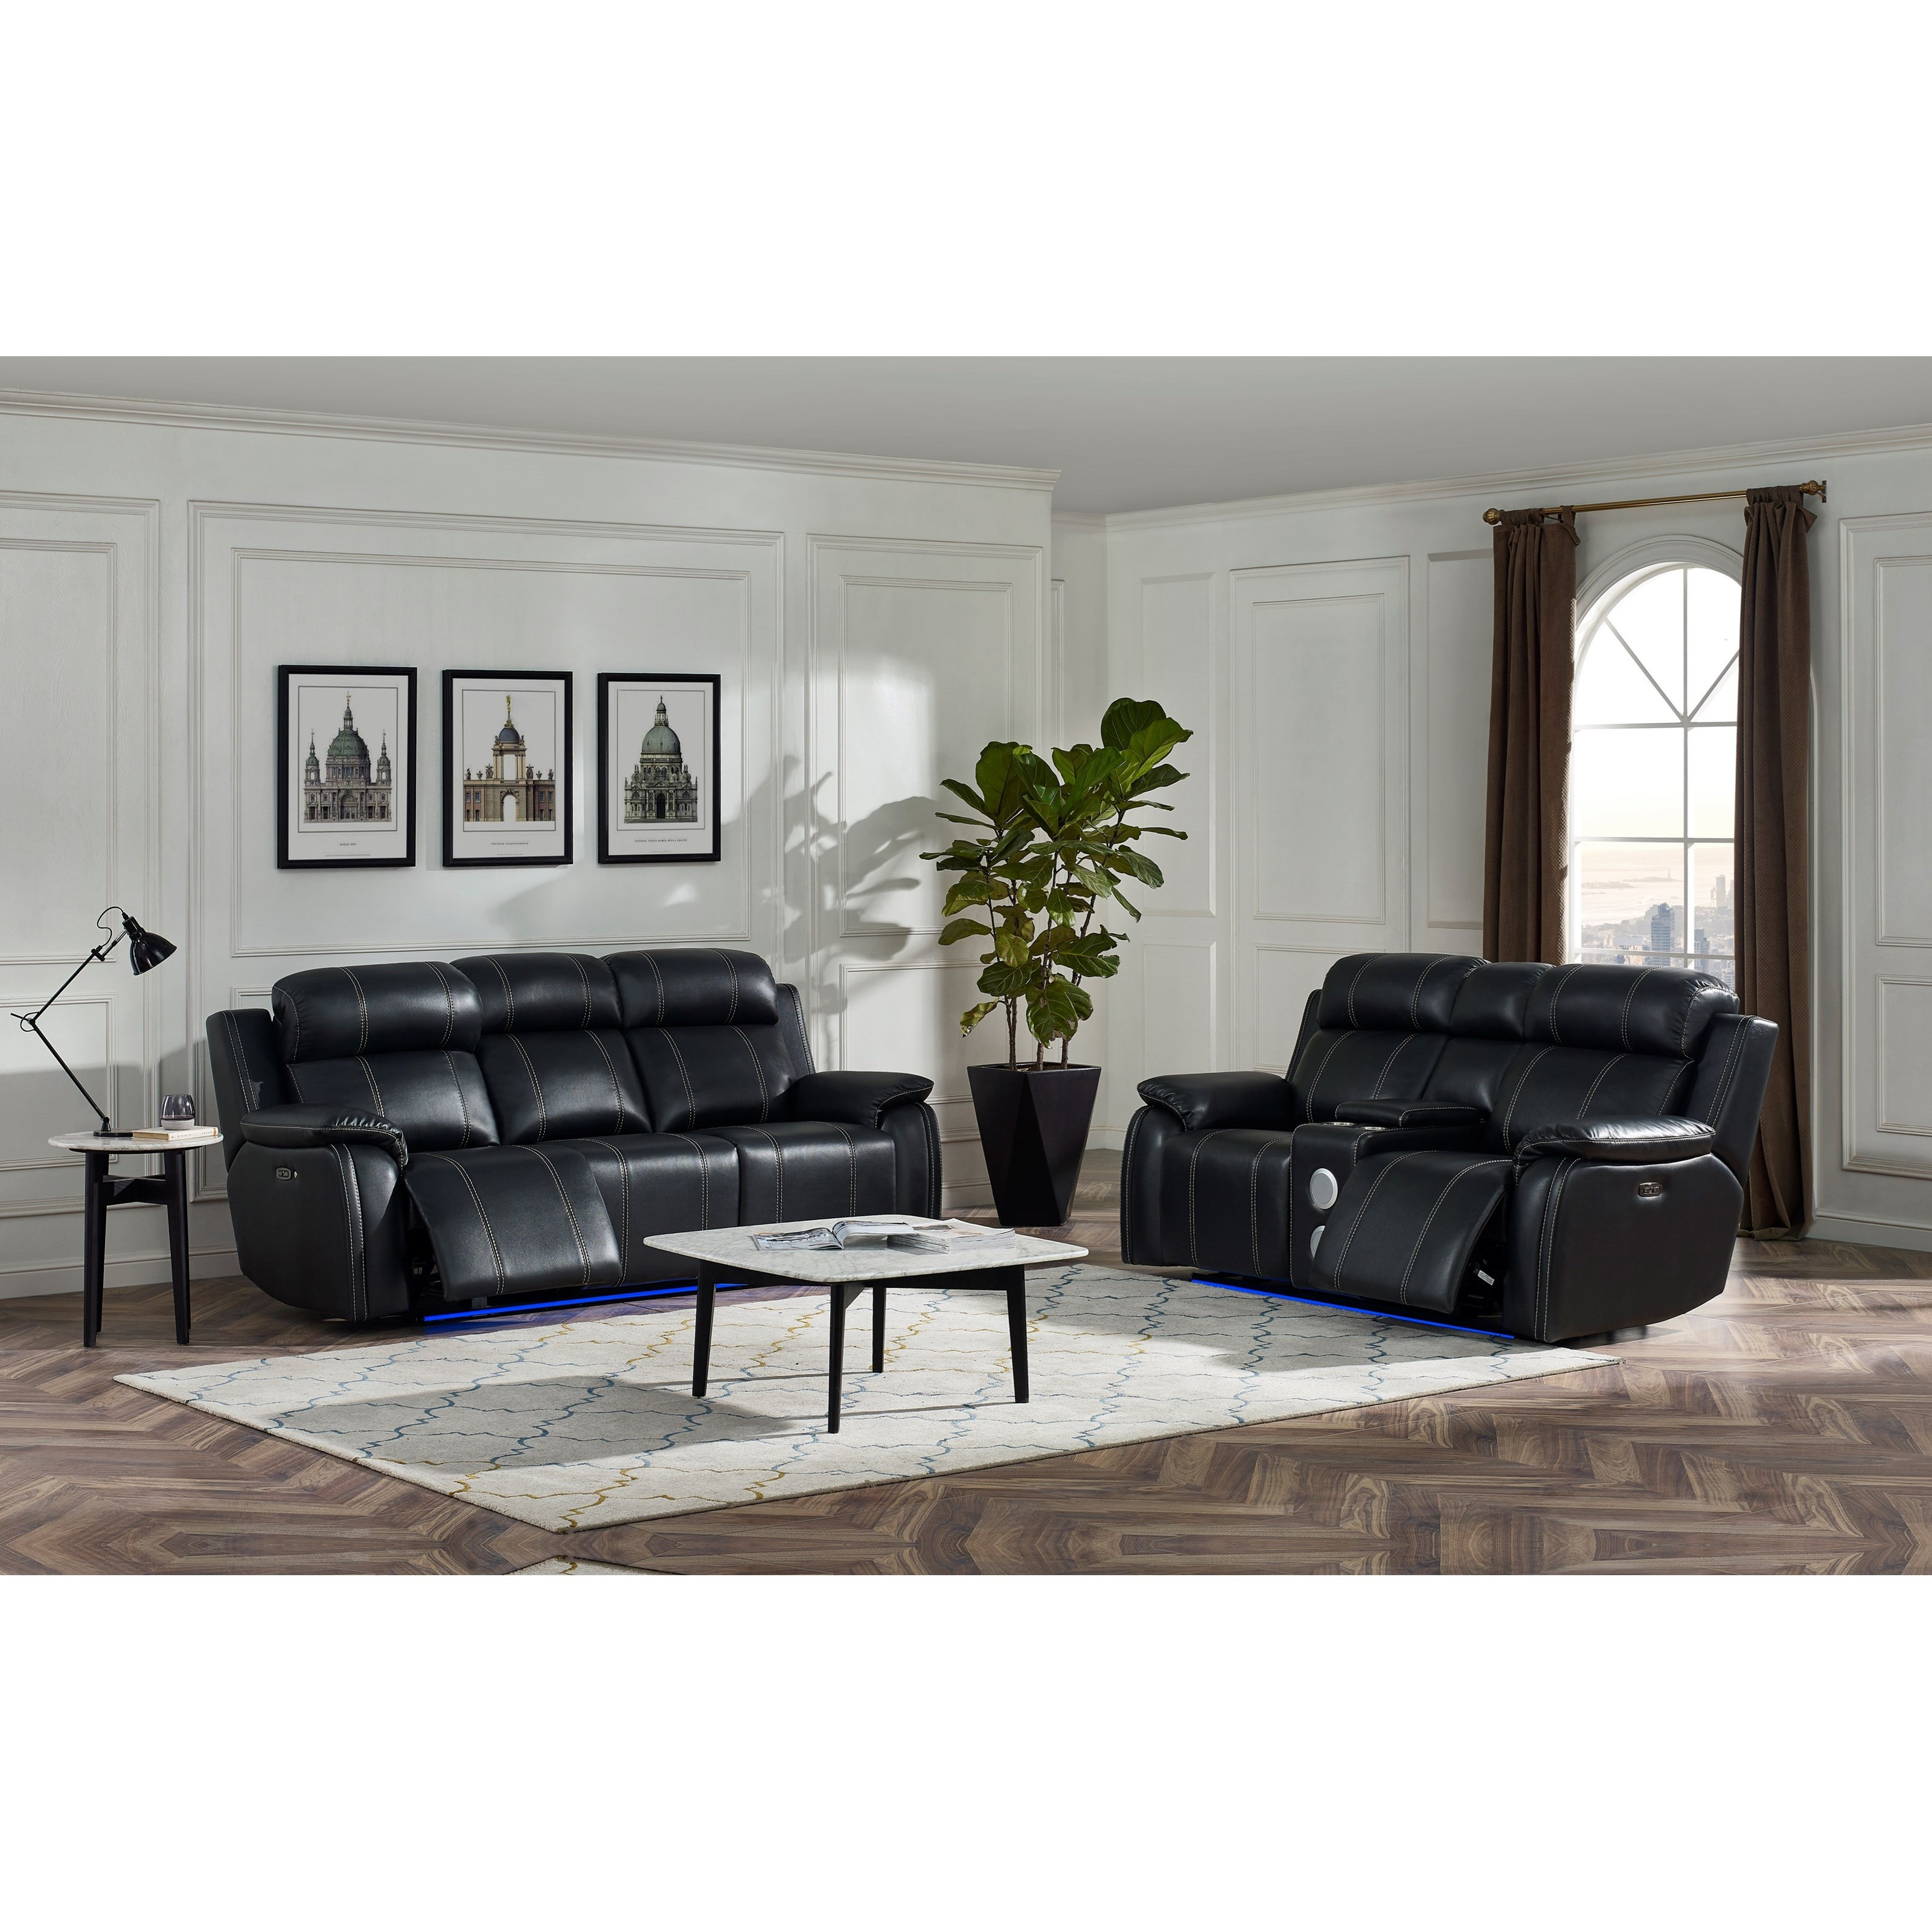 Fusion Reclining Living Room Group by New Classic at Rife's Home Furniture